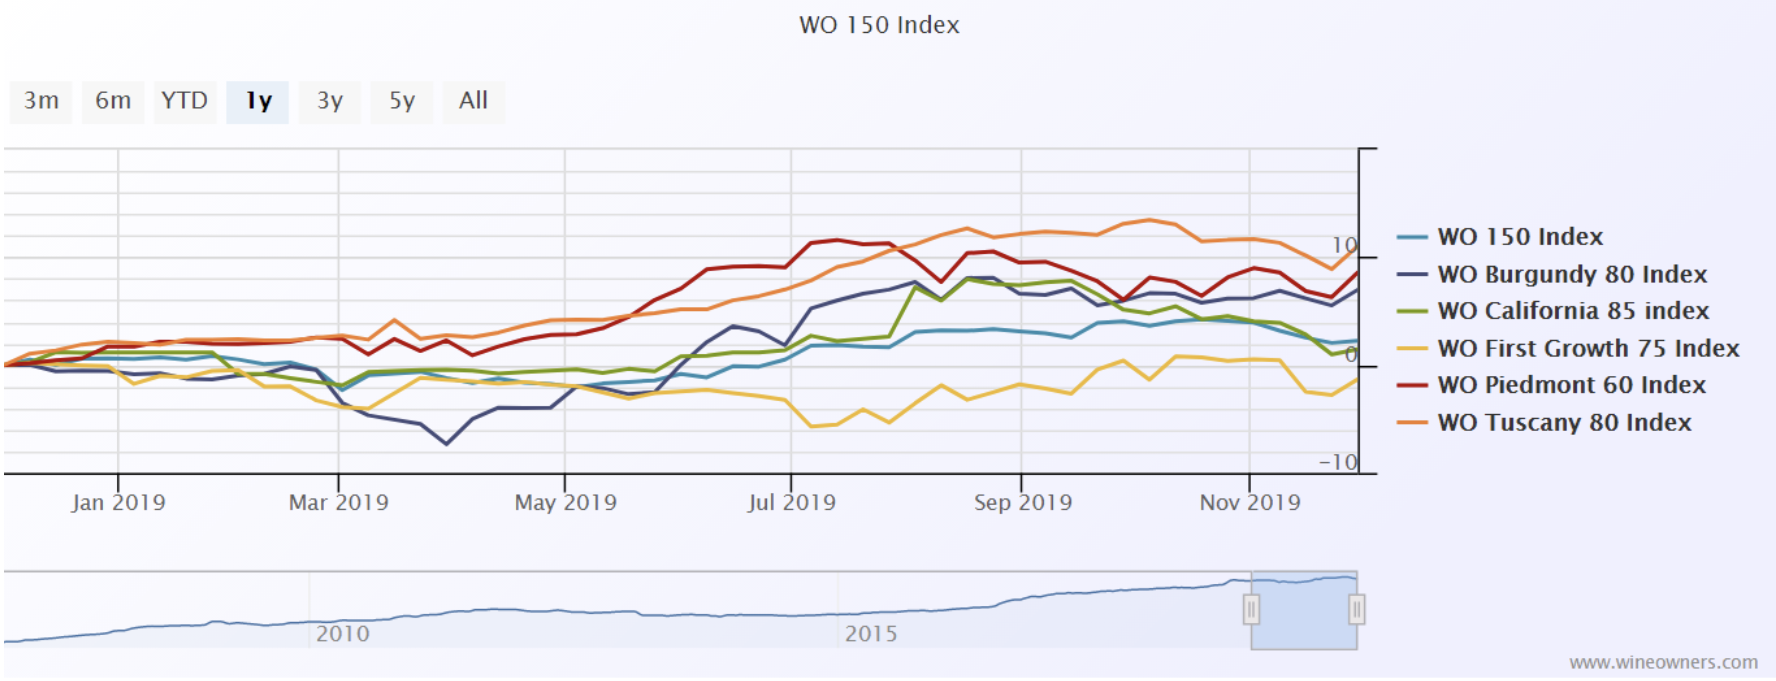 WO 150 Index - Wine Owners - November 2019